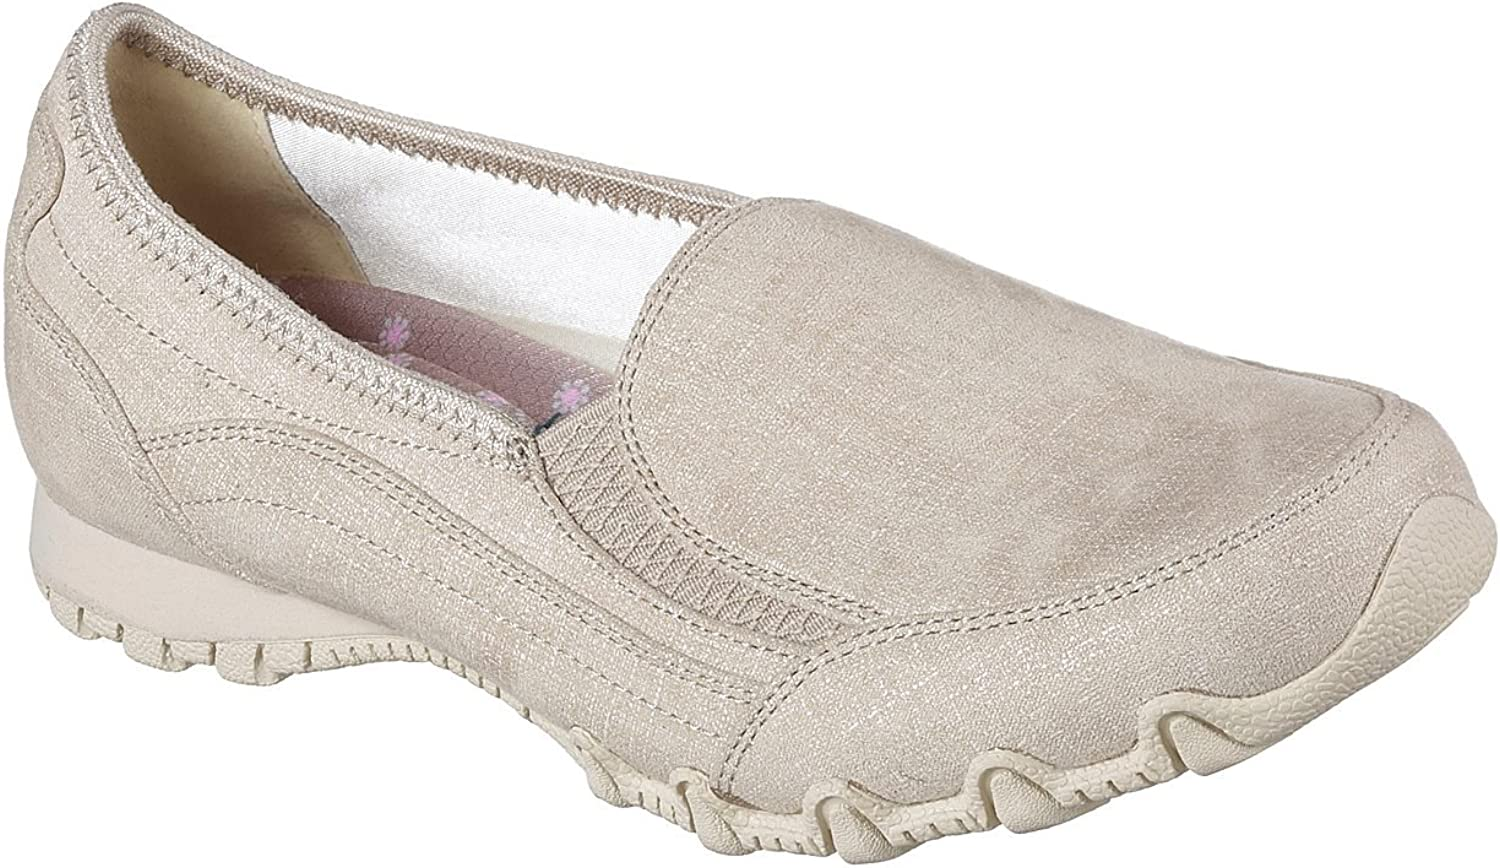 Skechers Relaxed Fit Bikers Confidence Womens Slip On Loafers